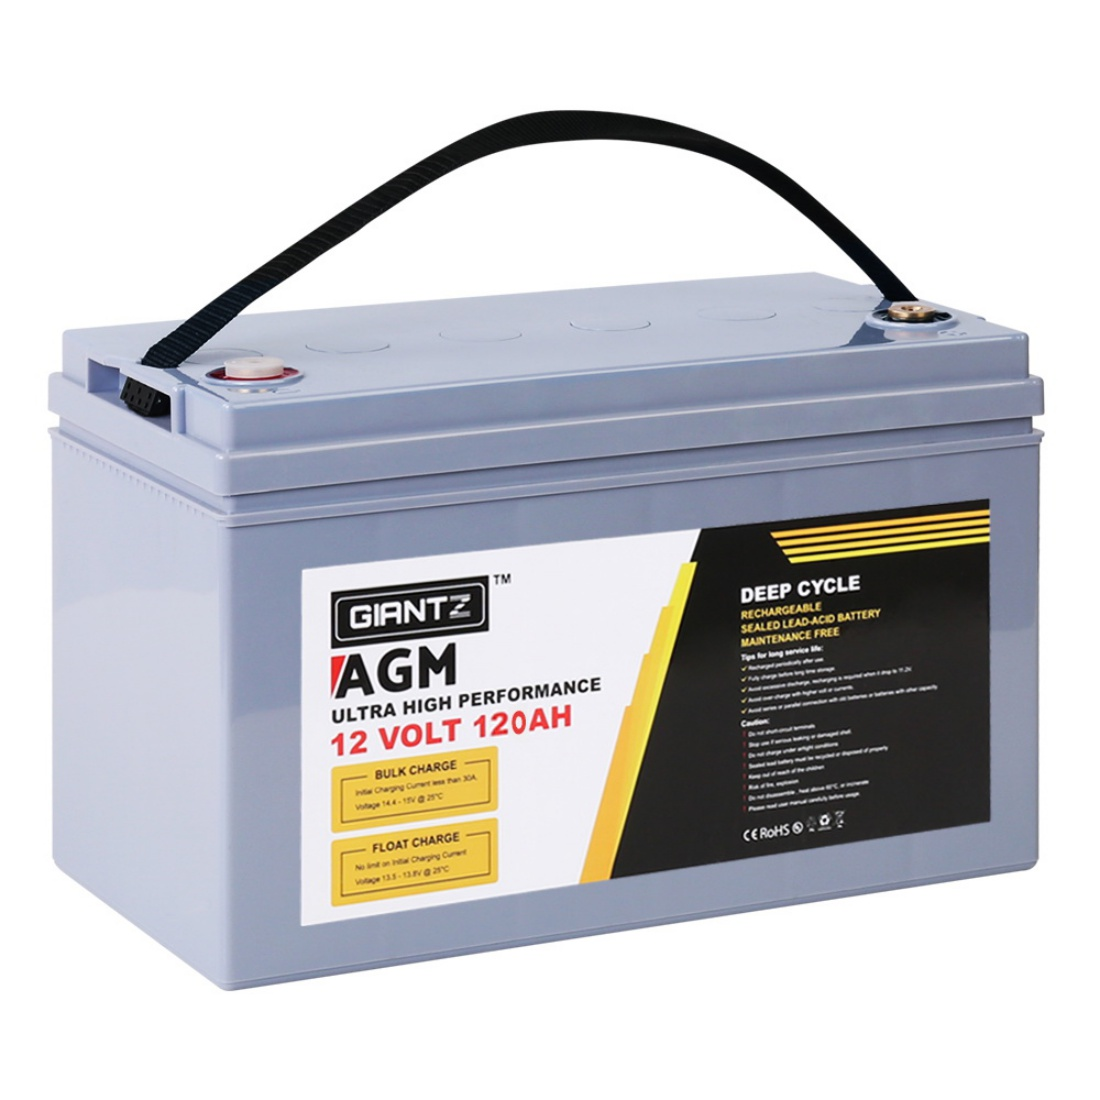 12V 120AH Amp Hour Battery AGM Deep Cycle 12 Volt